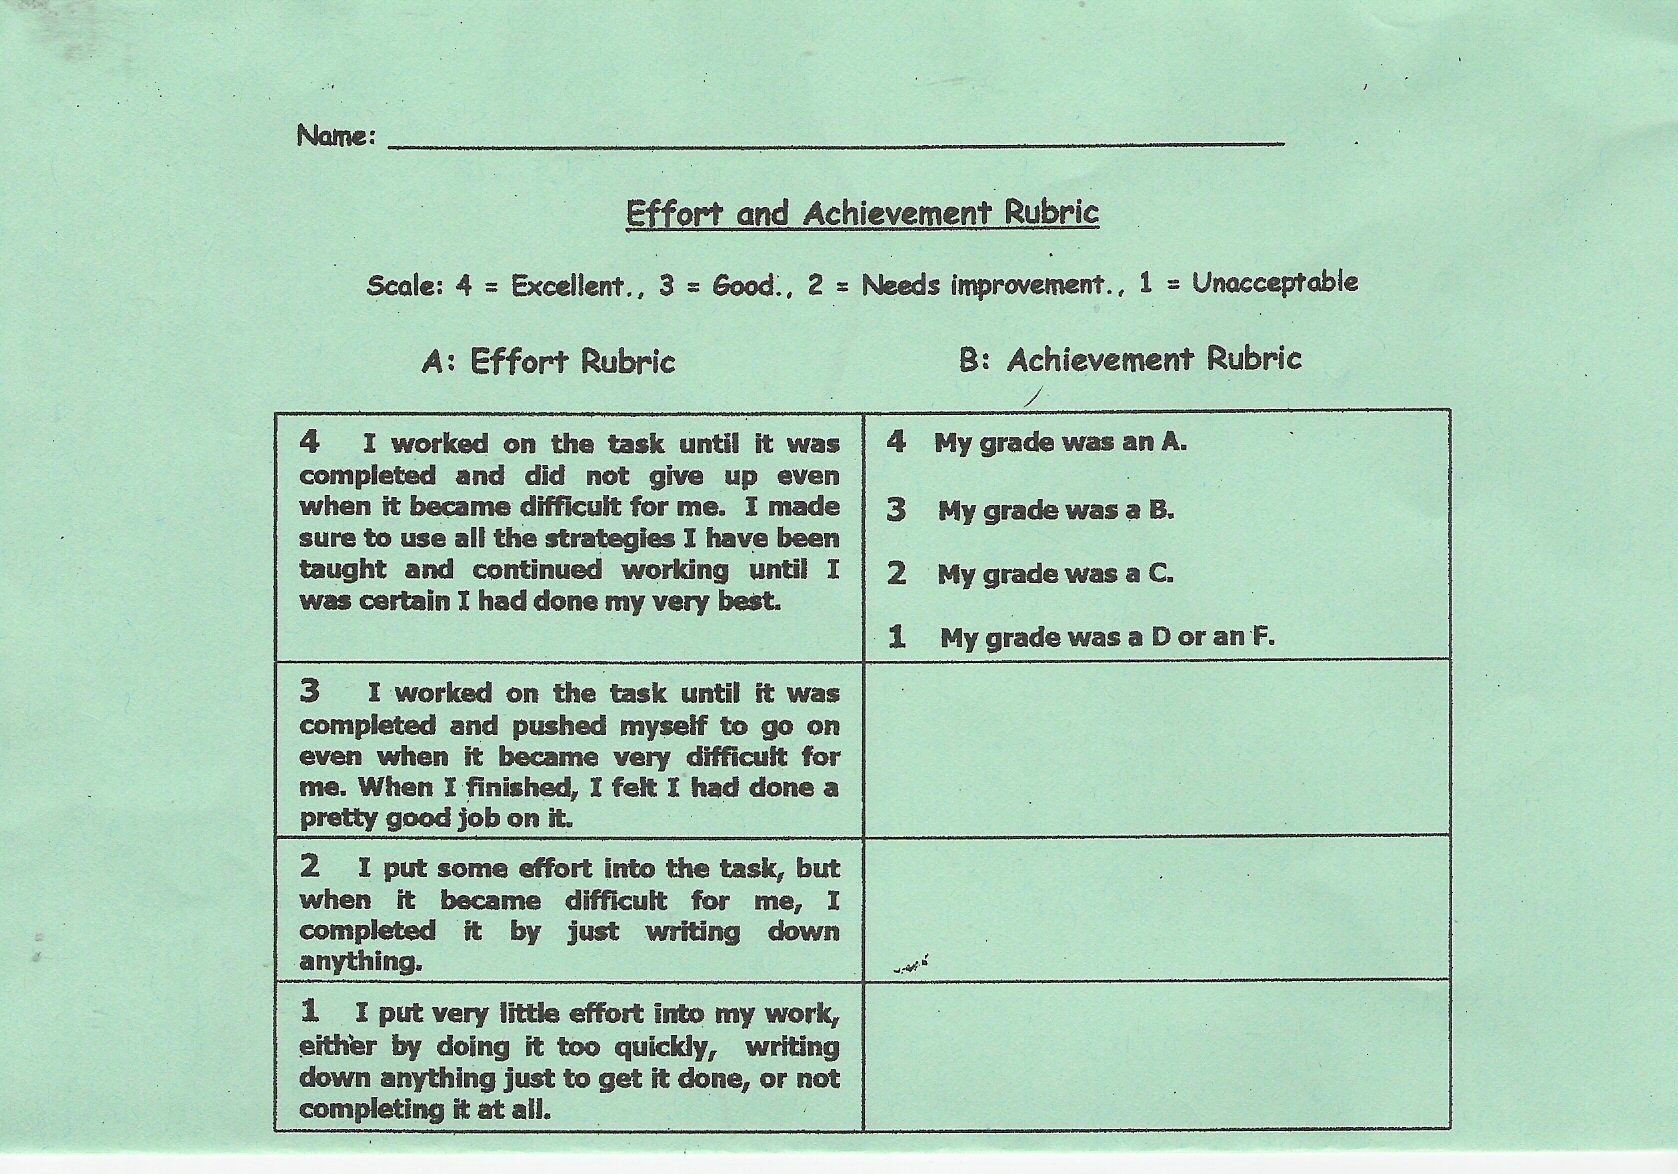 adapted from marzano s effort vs achievement rubric students